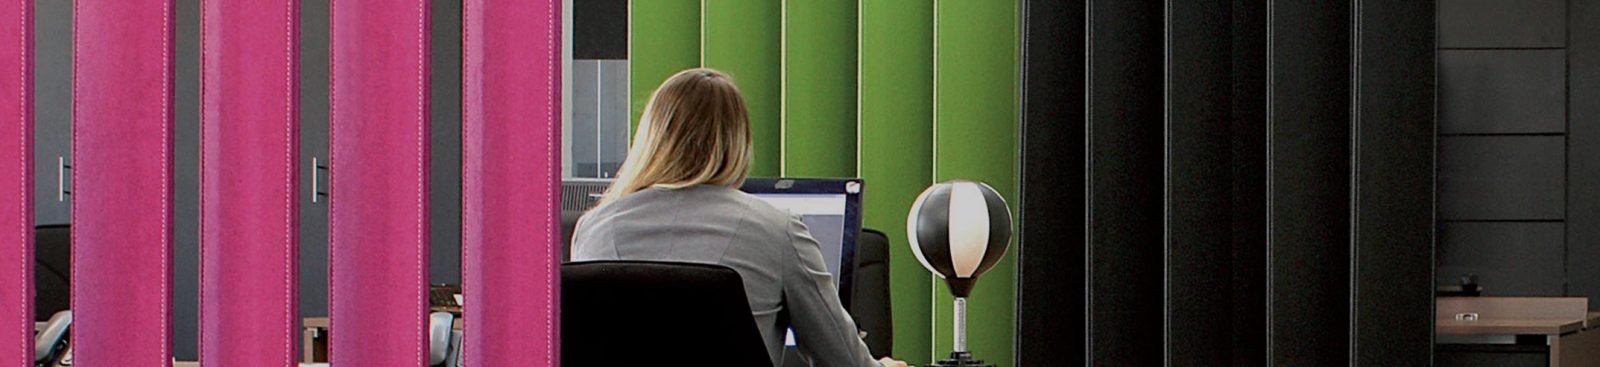 The ABCs of acoustics: how acoustic furniture improves focus in a noisy office image